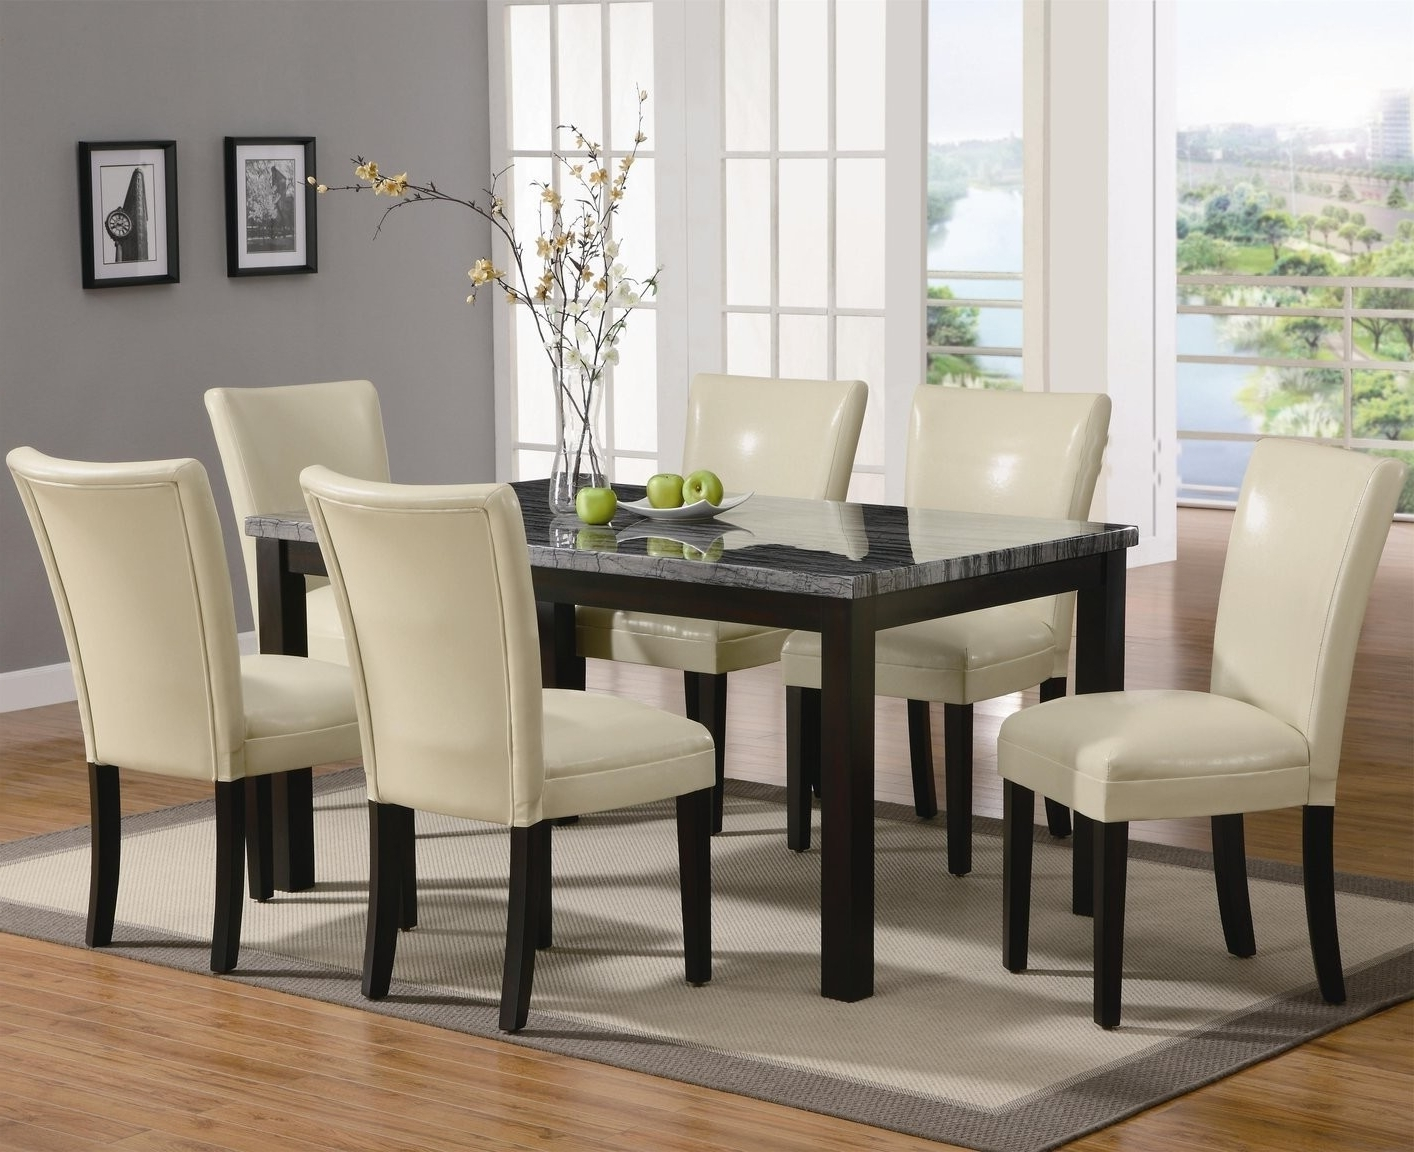 Leather Dining Room Chairs Throughout Fashionable Dining Sofa Chairs (View 13 of 20)